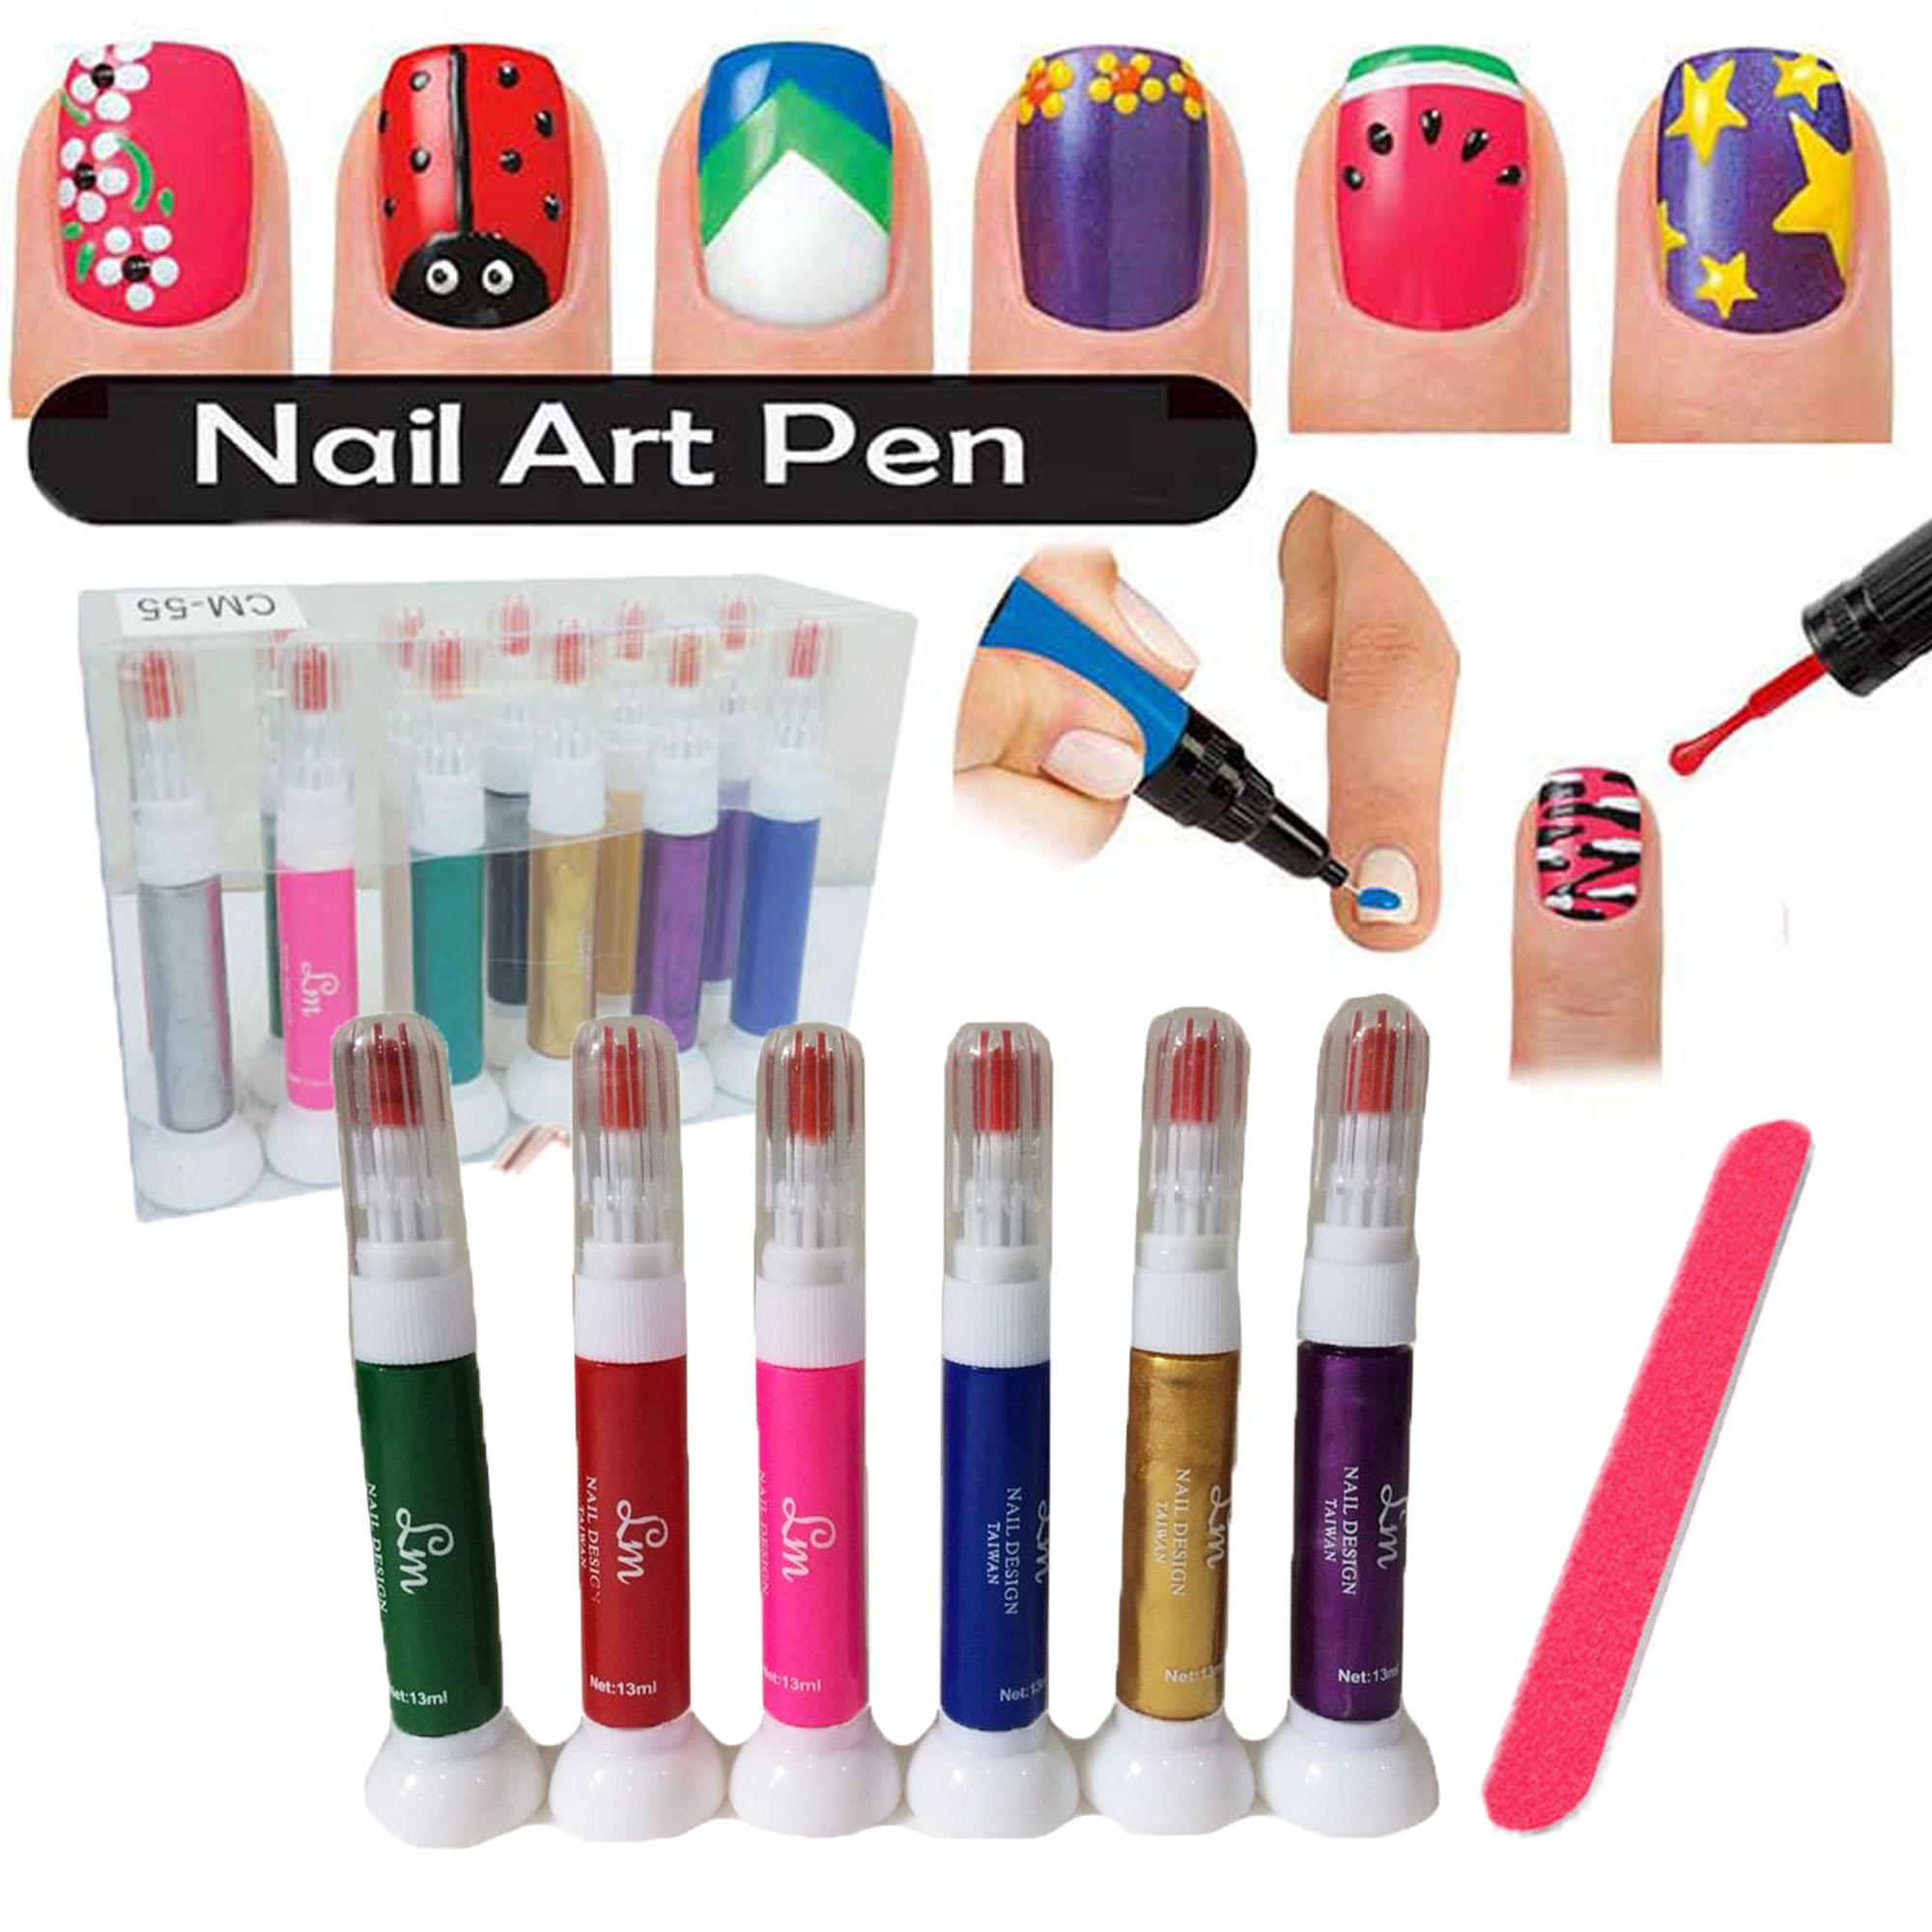 6 Colors 2-in-1 Brush and Art Pen Set Nail Art Pen for 3D Nail Art DIY Decoration Nail Polish Pen Set FREE Nail File 227g Philippines